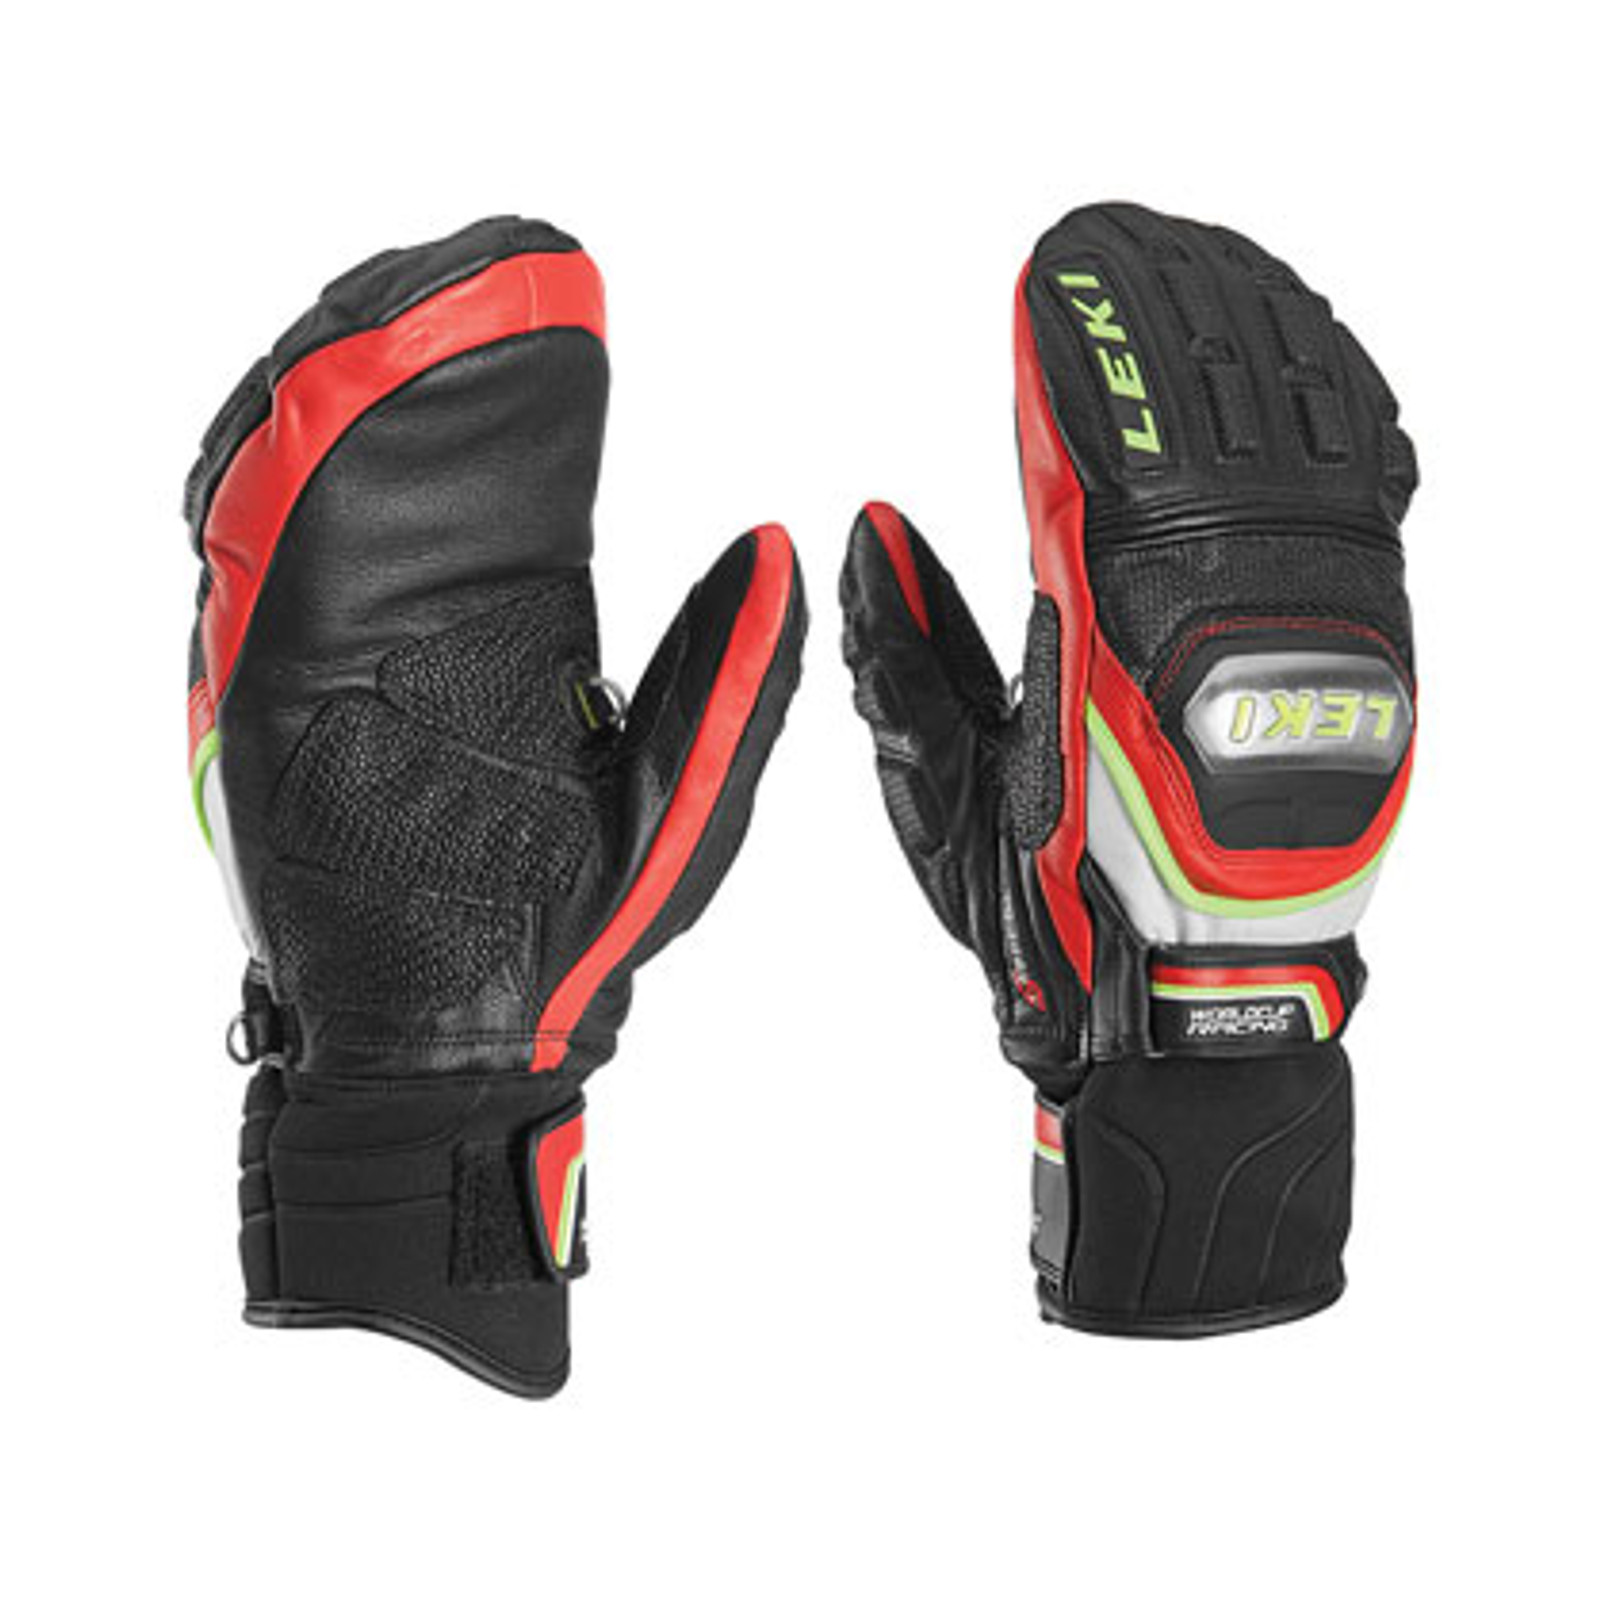 Leki World Cup Race Titanium S Mittens - Black/Red